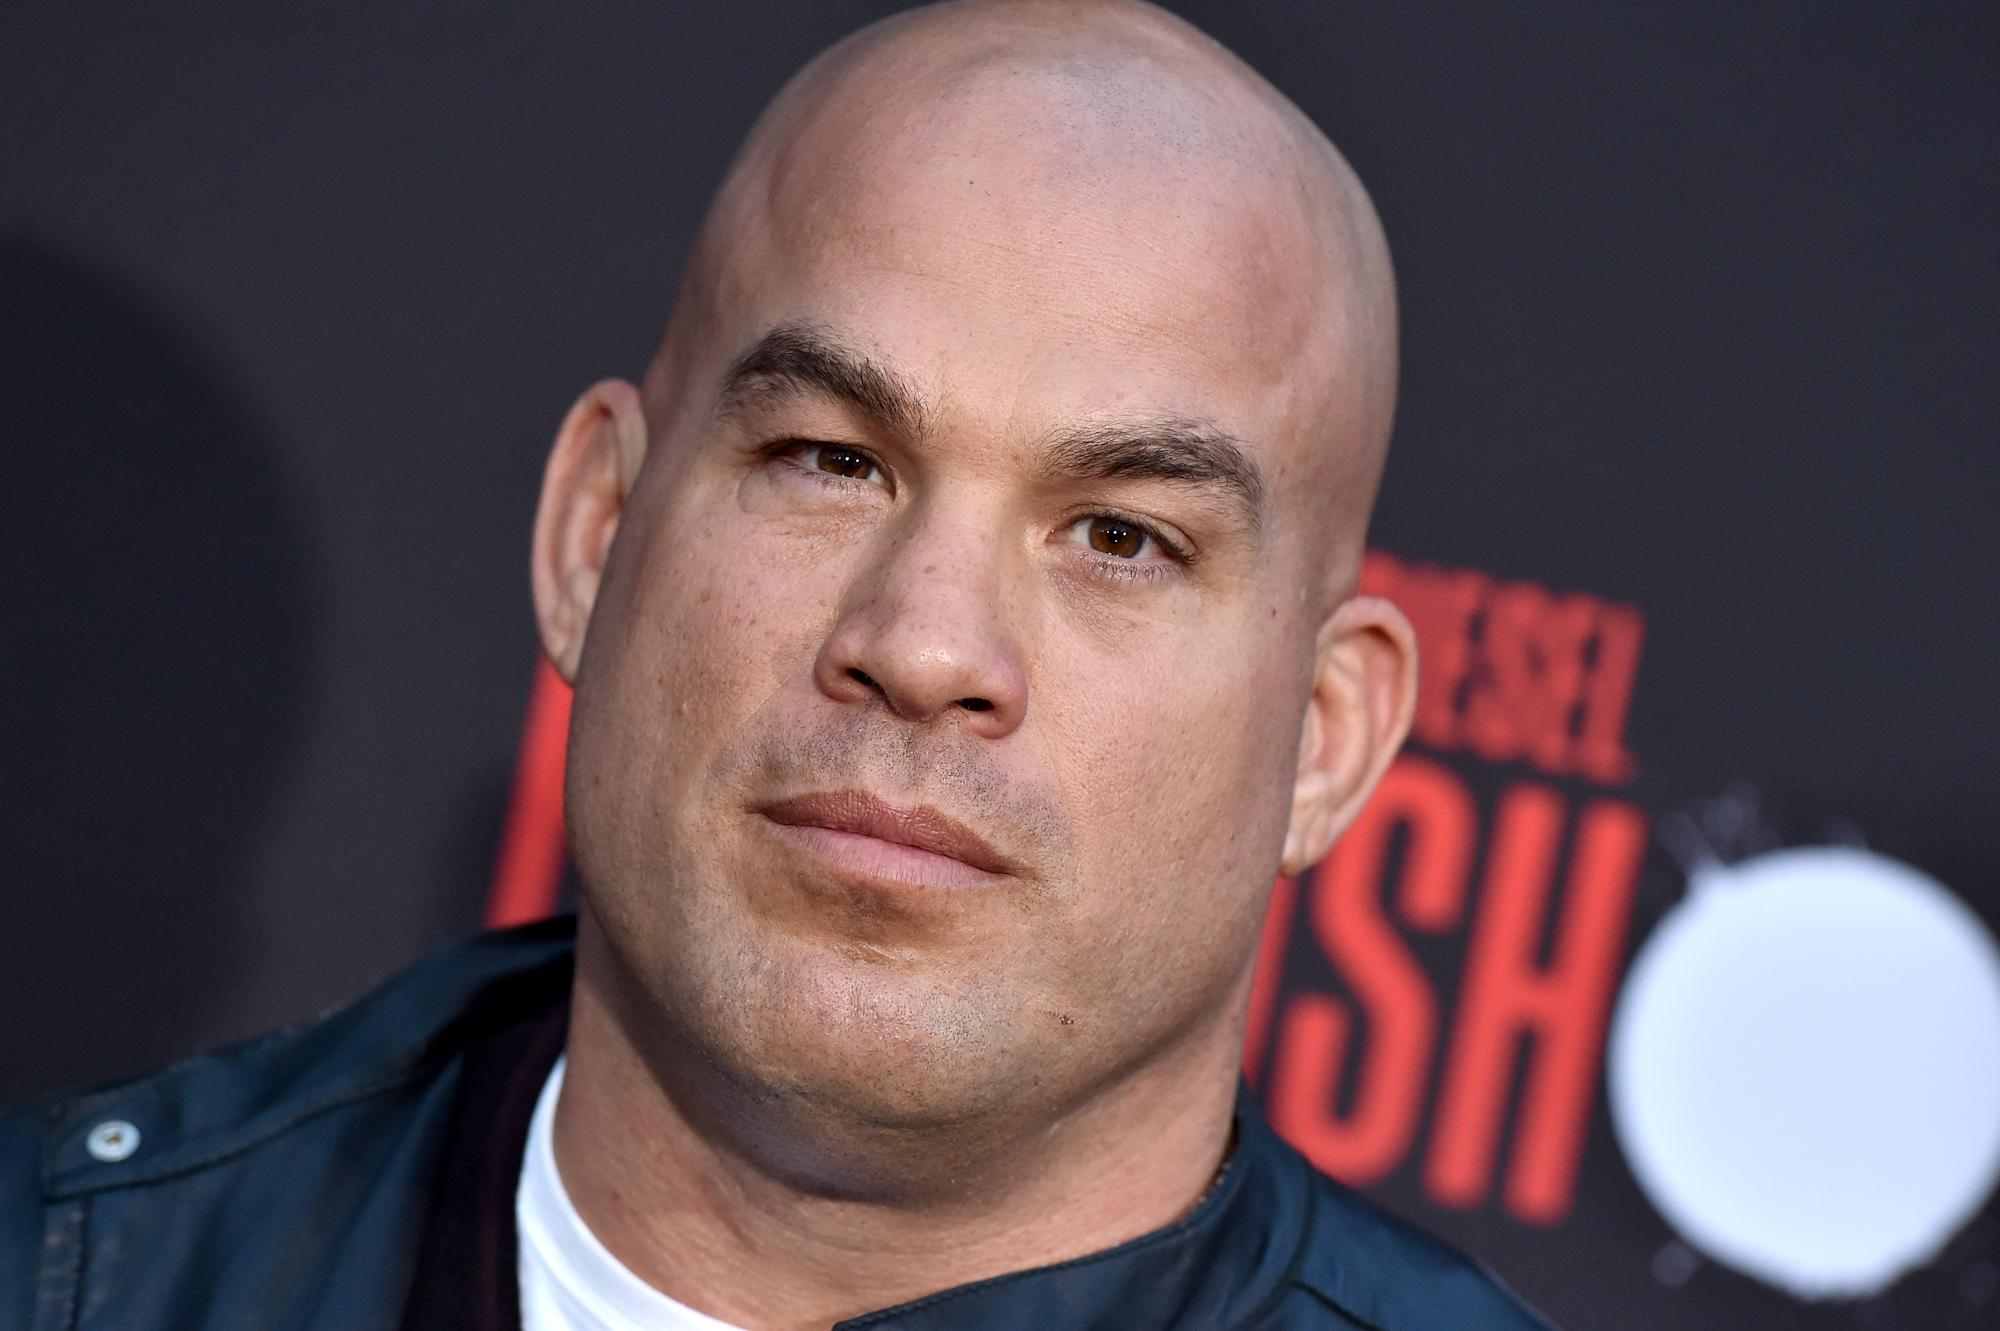 Anderson Silva, Tito Ortiz will reportedly face off in boxing match on Sept. 11